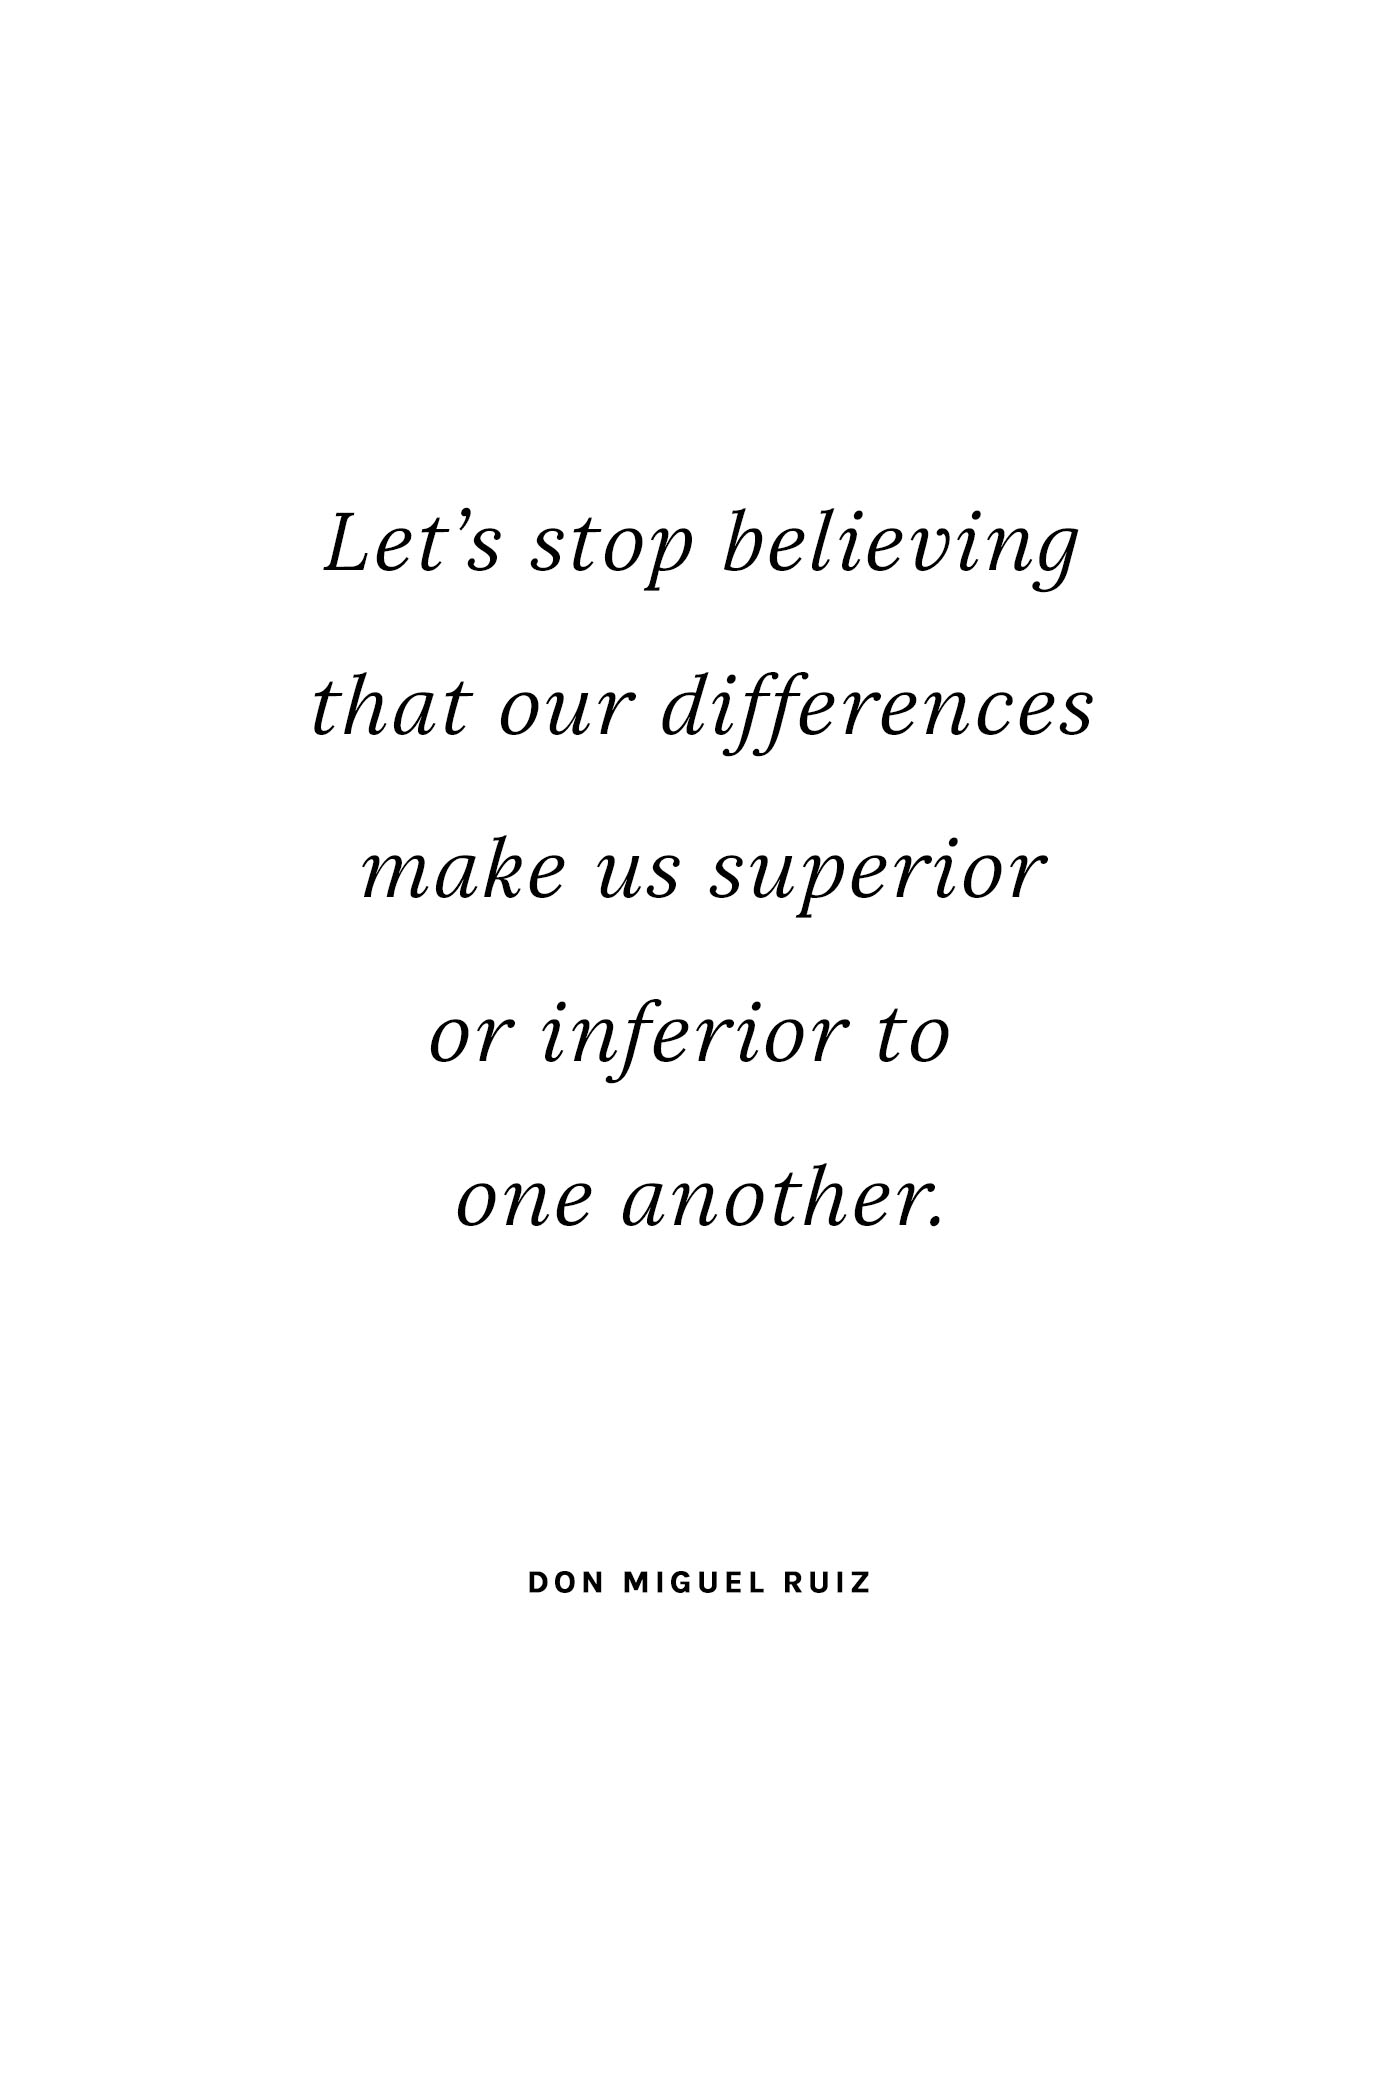 """Let's stop believing that our differences make us superior or inferior to one another."" - Don Miguel Ruiz - 5 Inspiring Quotes for a Positive Lifestyle on Hej Doll"